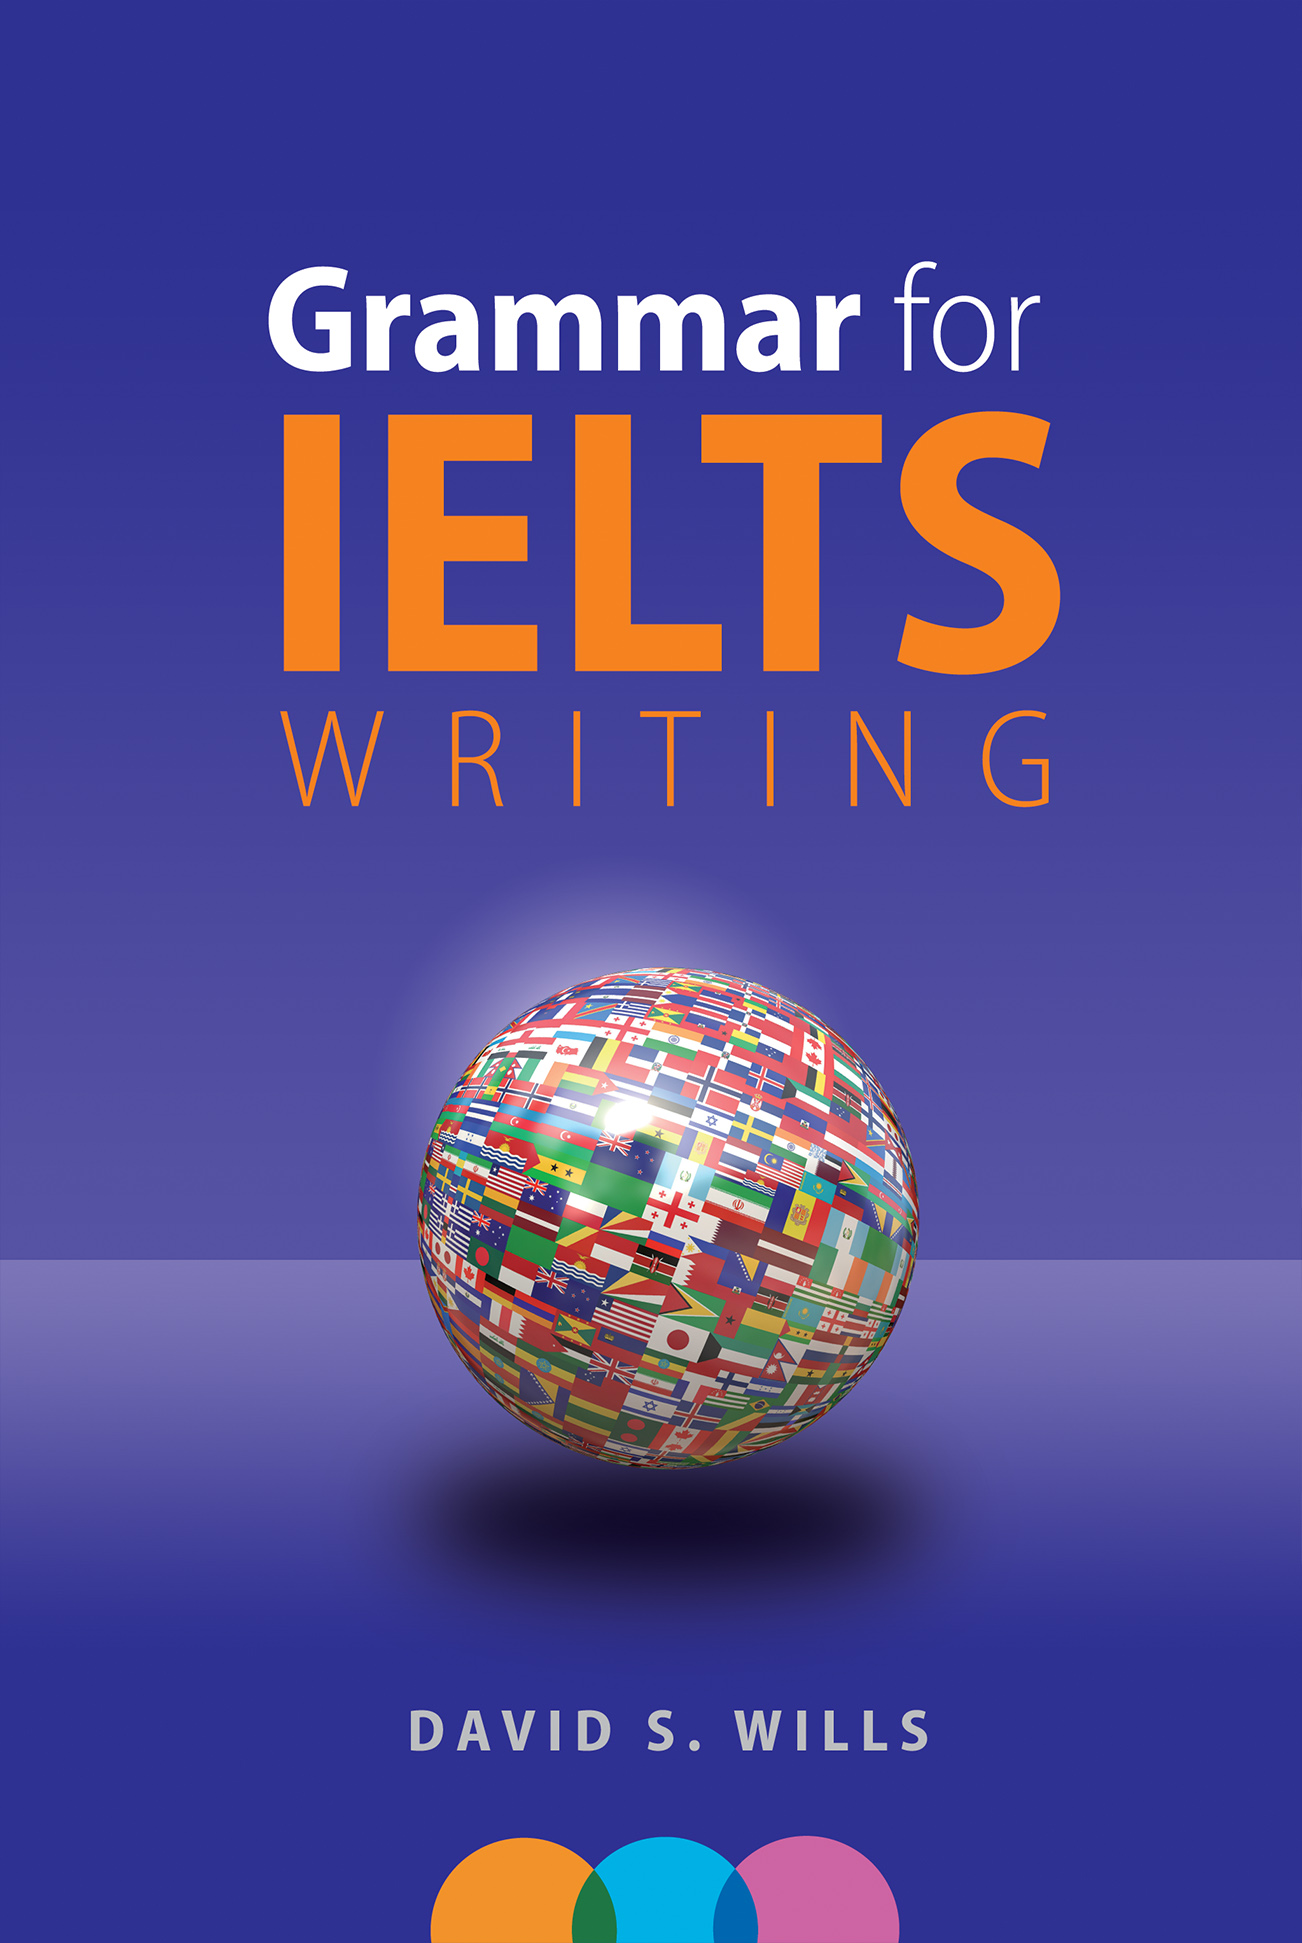 new cover Small - The 8 Parts of Speech You Need to Know for IELTS [Grammar Lesson]